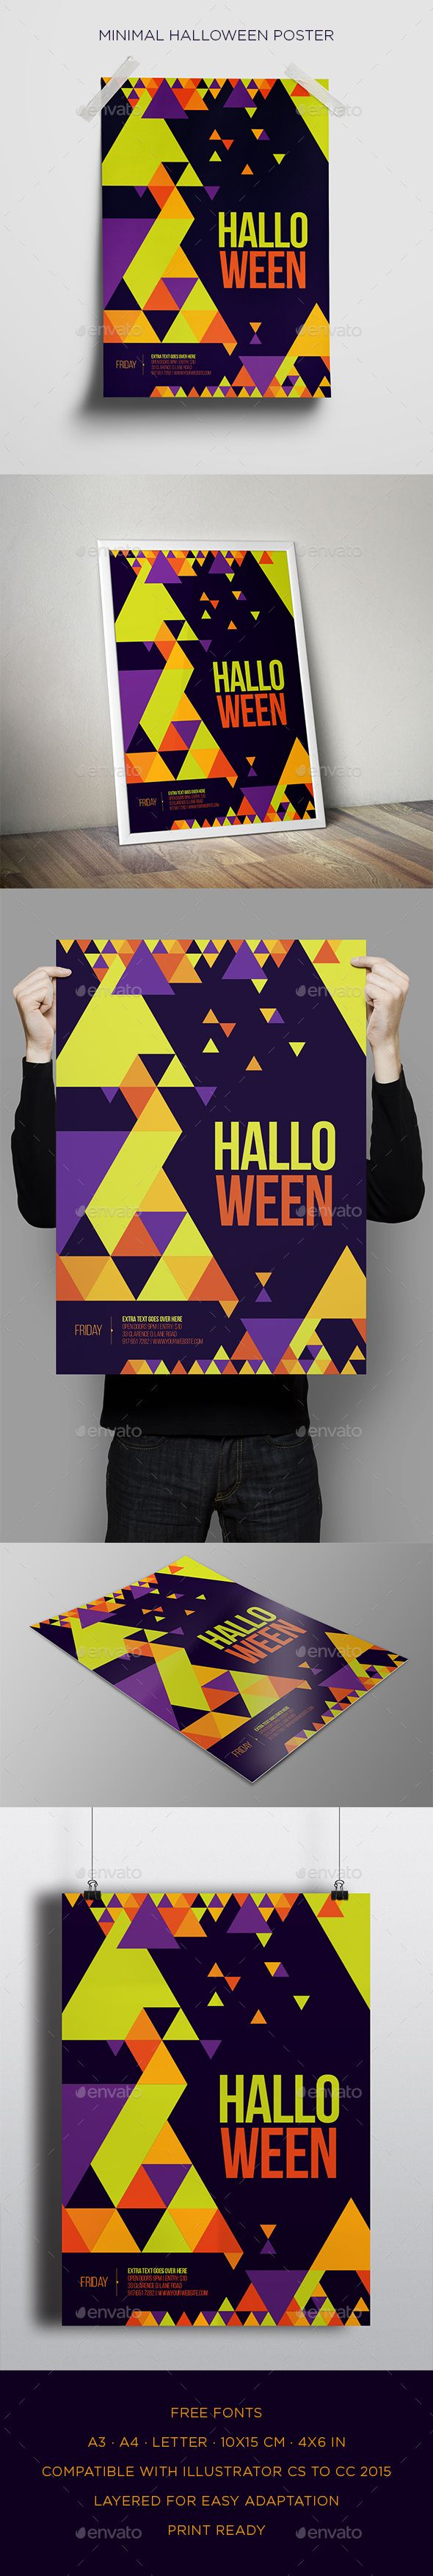 Minimal Halloween Poster  — EPS Template #invitation #professional • Download ➝ https://graphicriver.net/item/minimal-halloween-poster/18047822?ref=pxcr